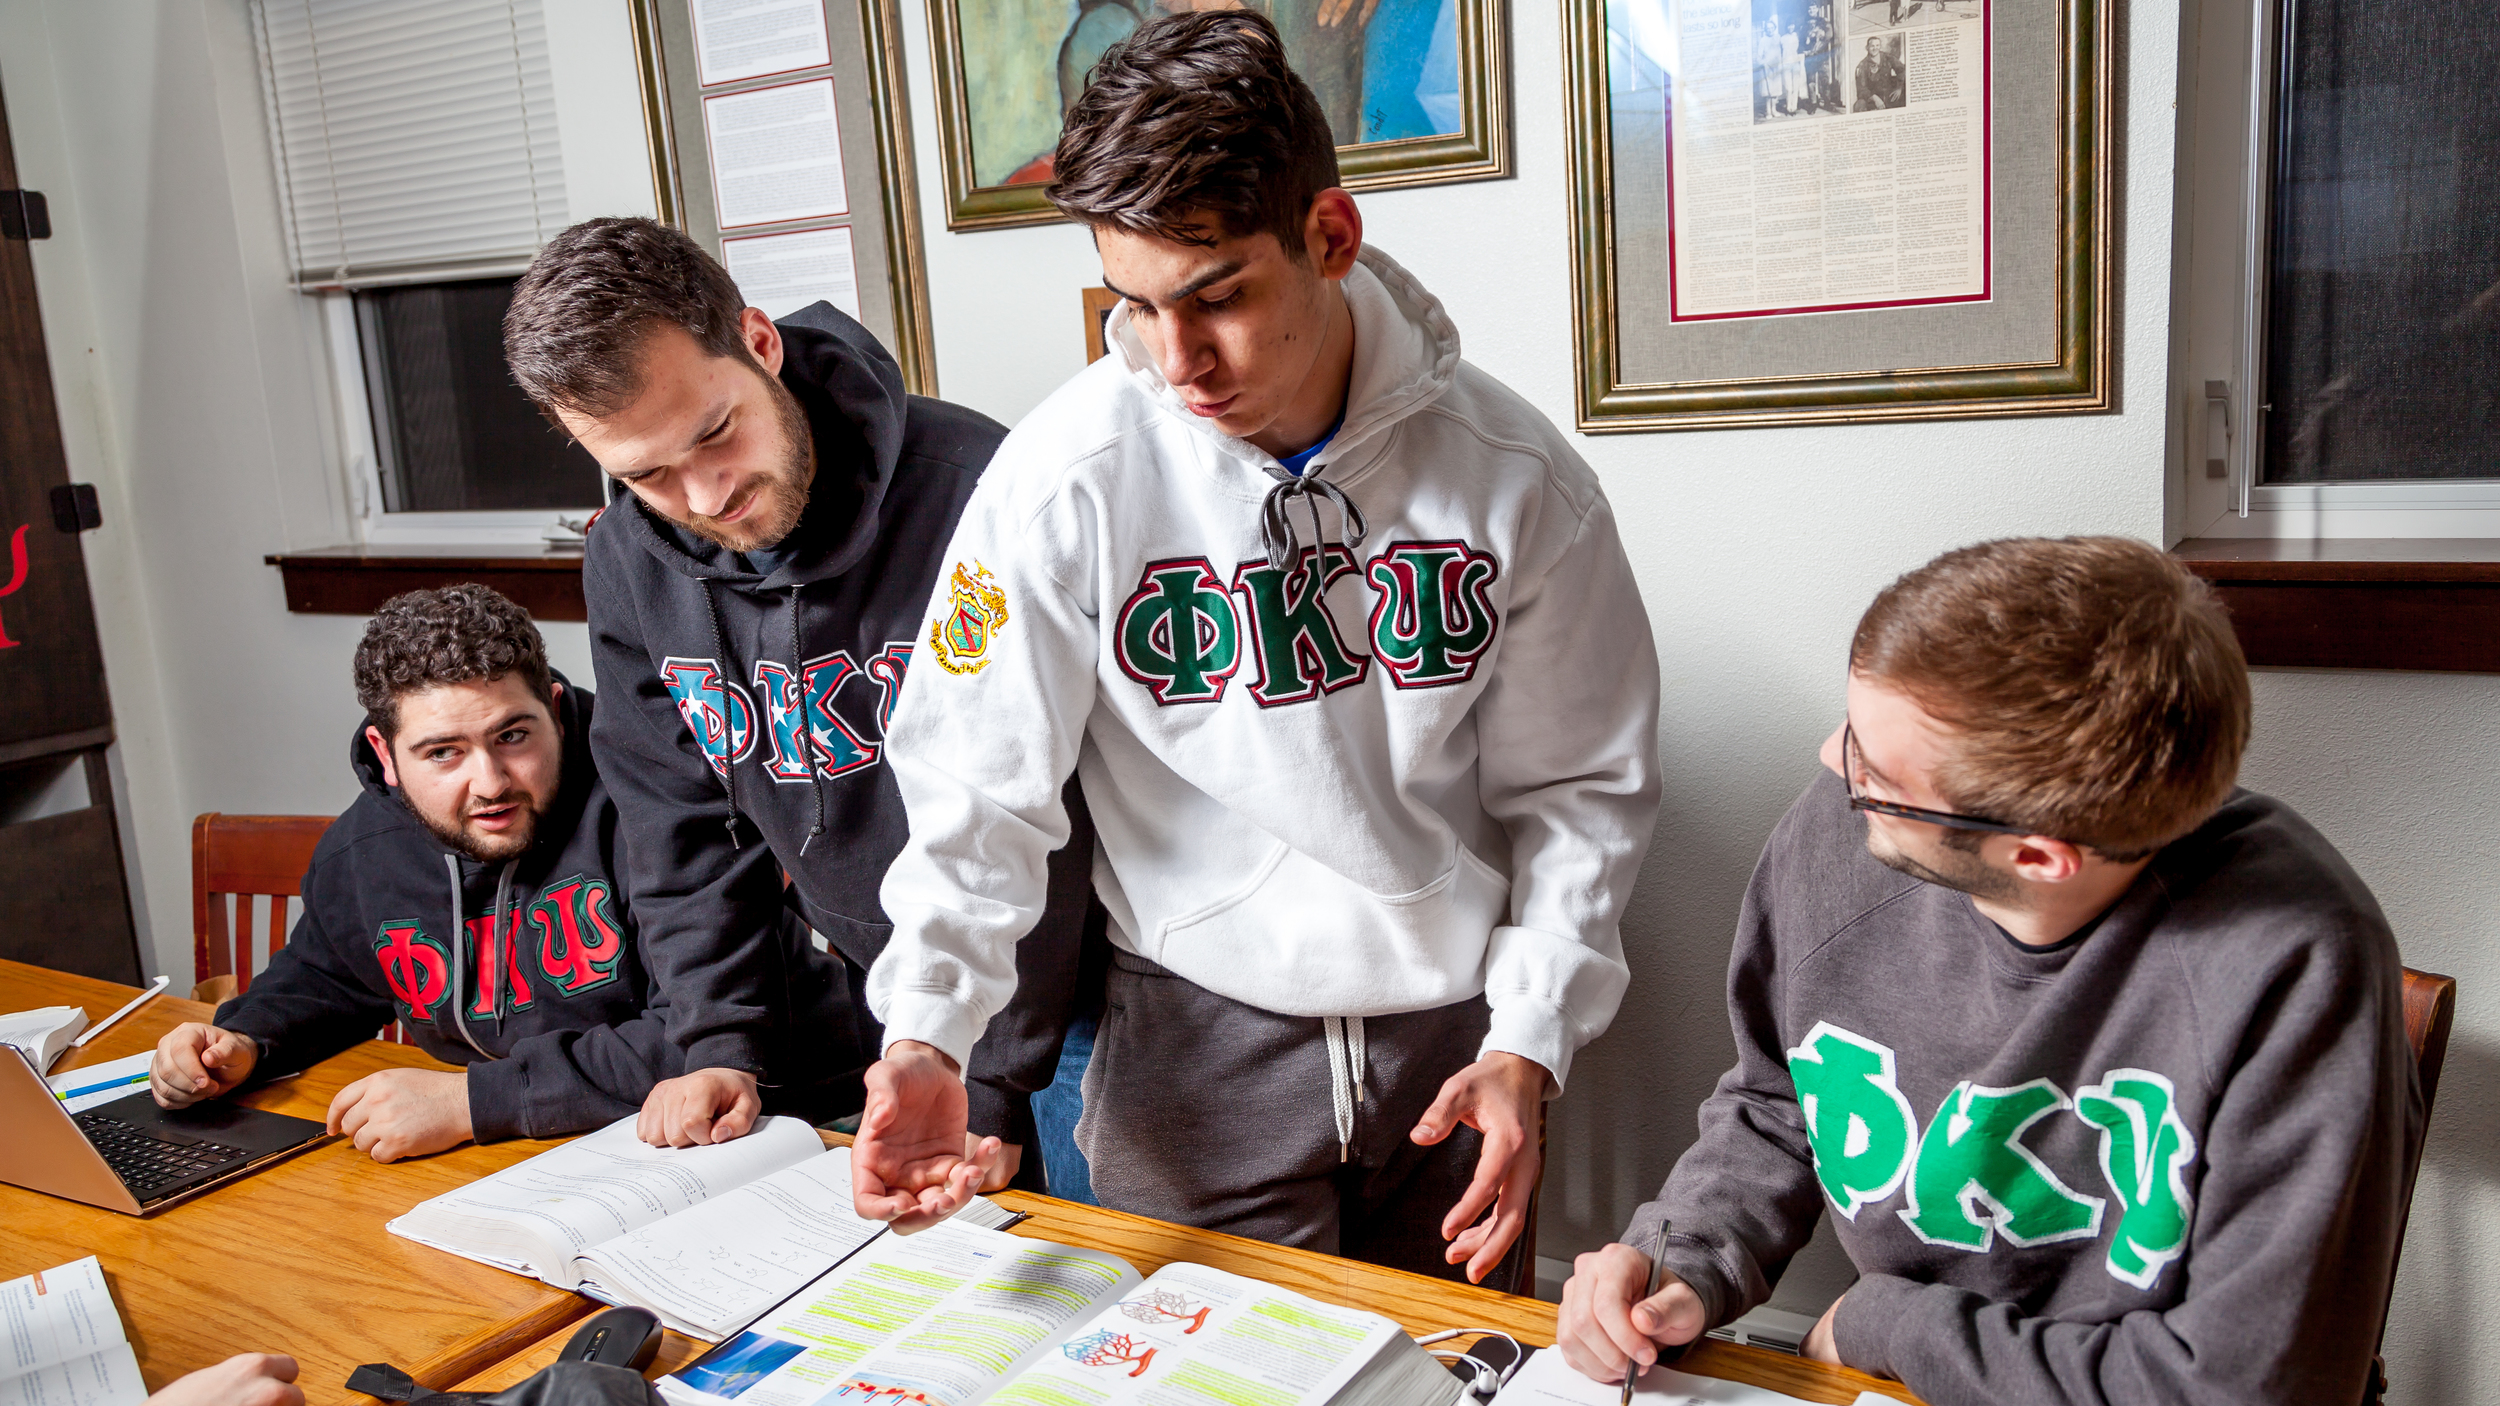 Scholarship Chairman Chano Dominguez helps his peers understand the lymphatic system during a Biology study session.